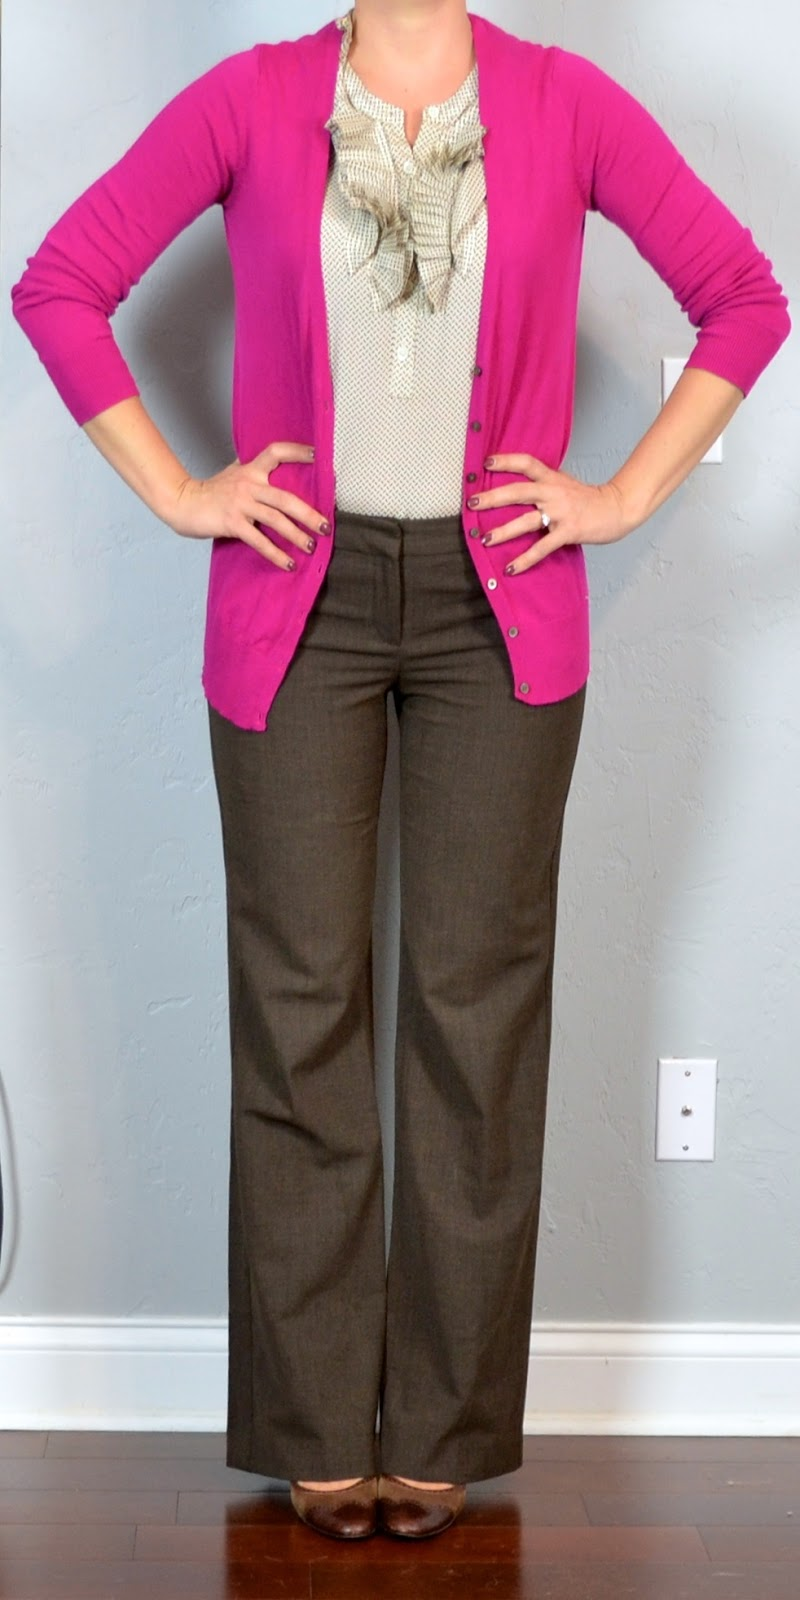 Outfit Of The Day By Jessica S 13 Year Old: Outfit Post: Bright Pink Cardigan, Ruffle Blouse, Brown